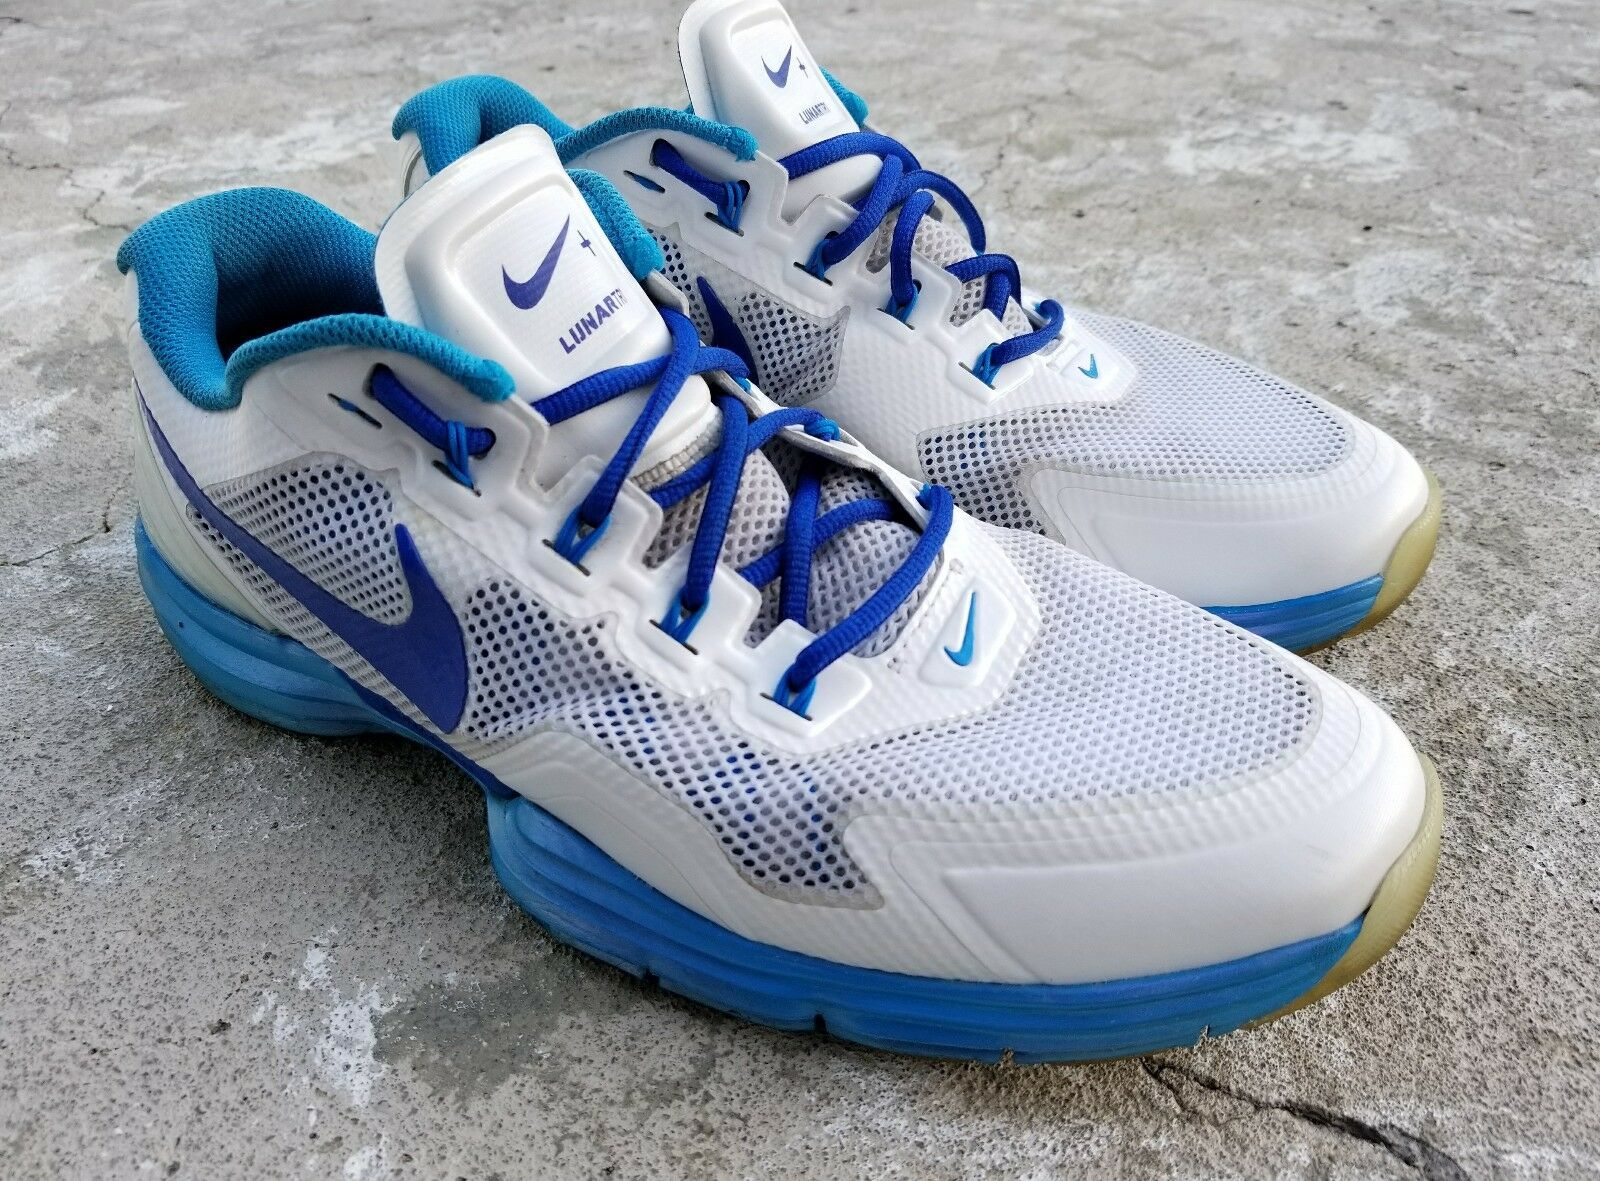 The latest discount shoes for men and women MENS NIKE LUNAR TR1 RUNNING SHOES Price reduction